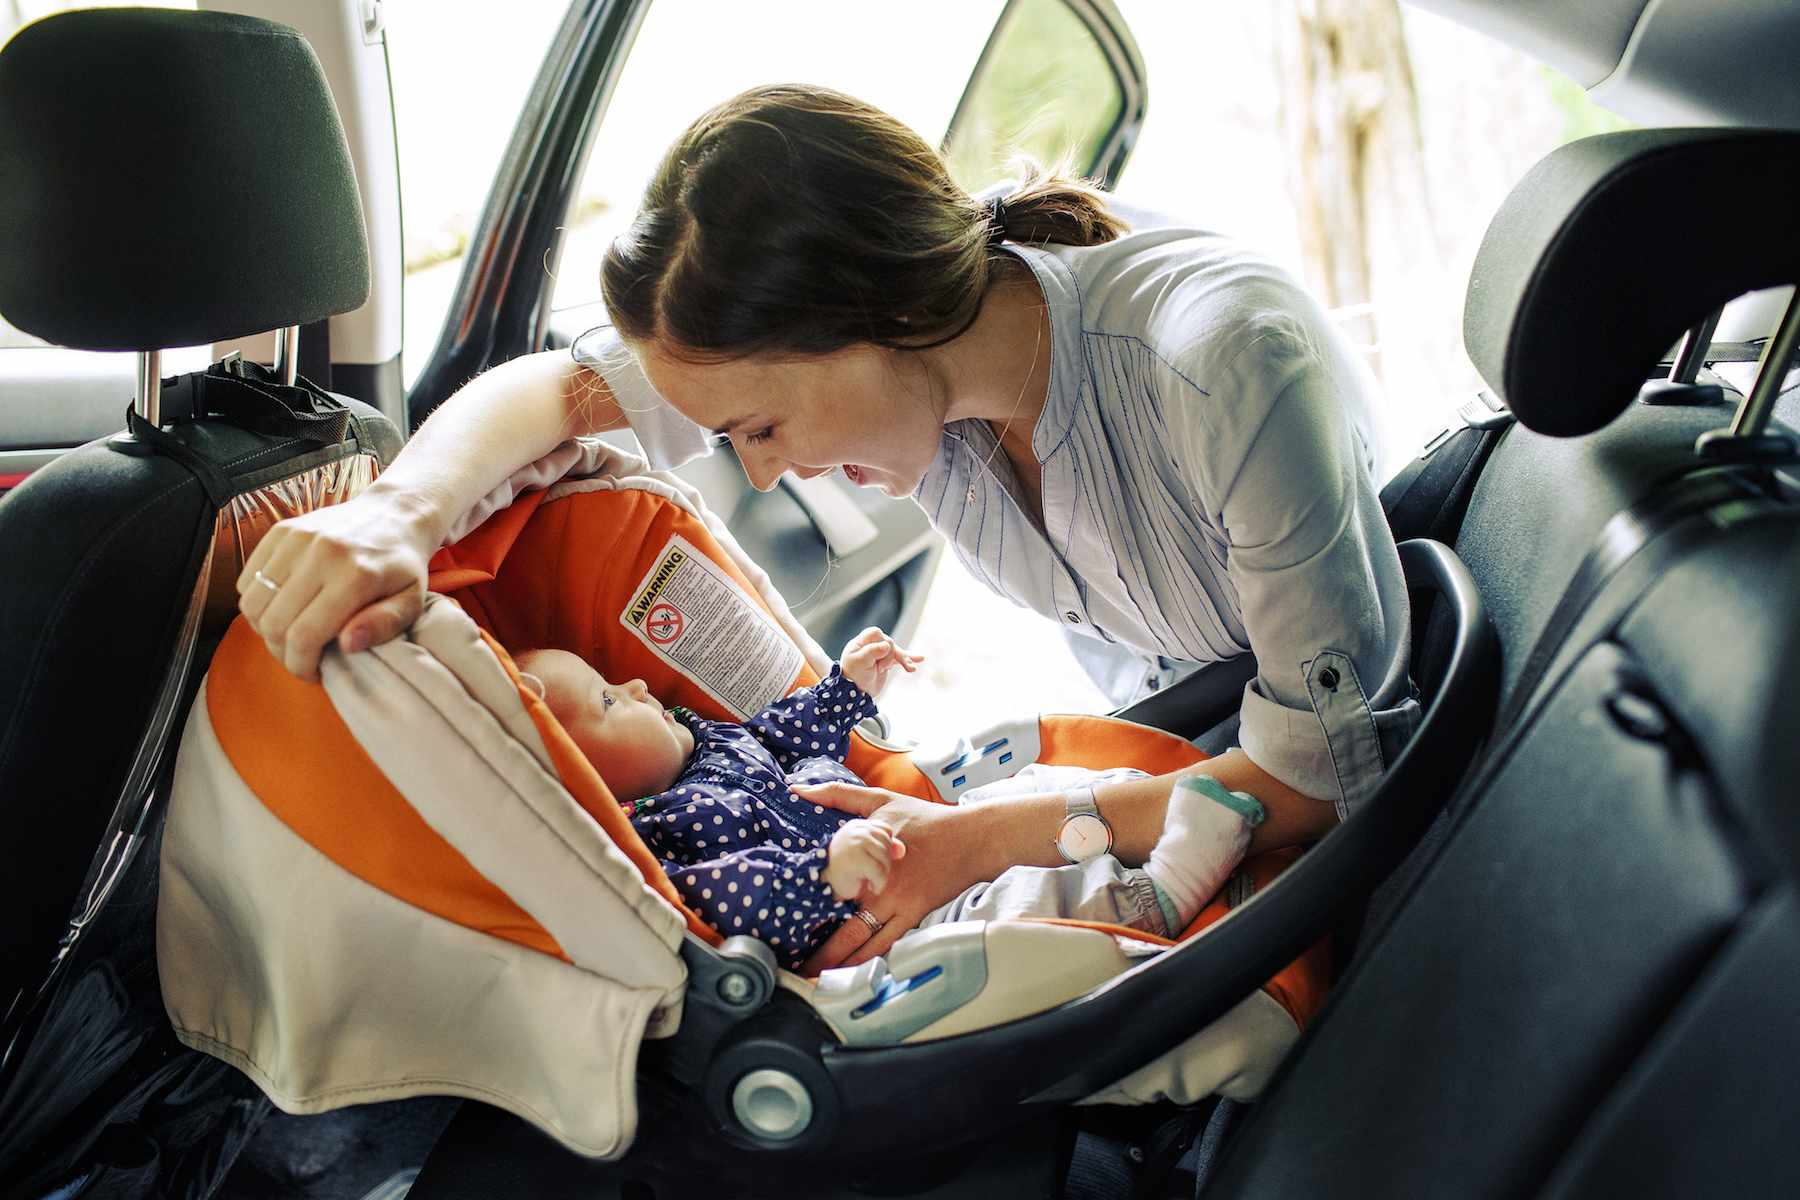 Newborn Car Seat Set Up How To Put A Baby Into A Car Seat Properly Parents